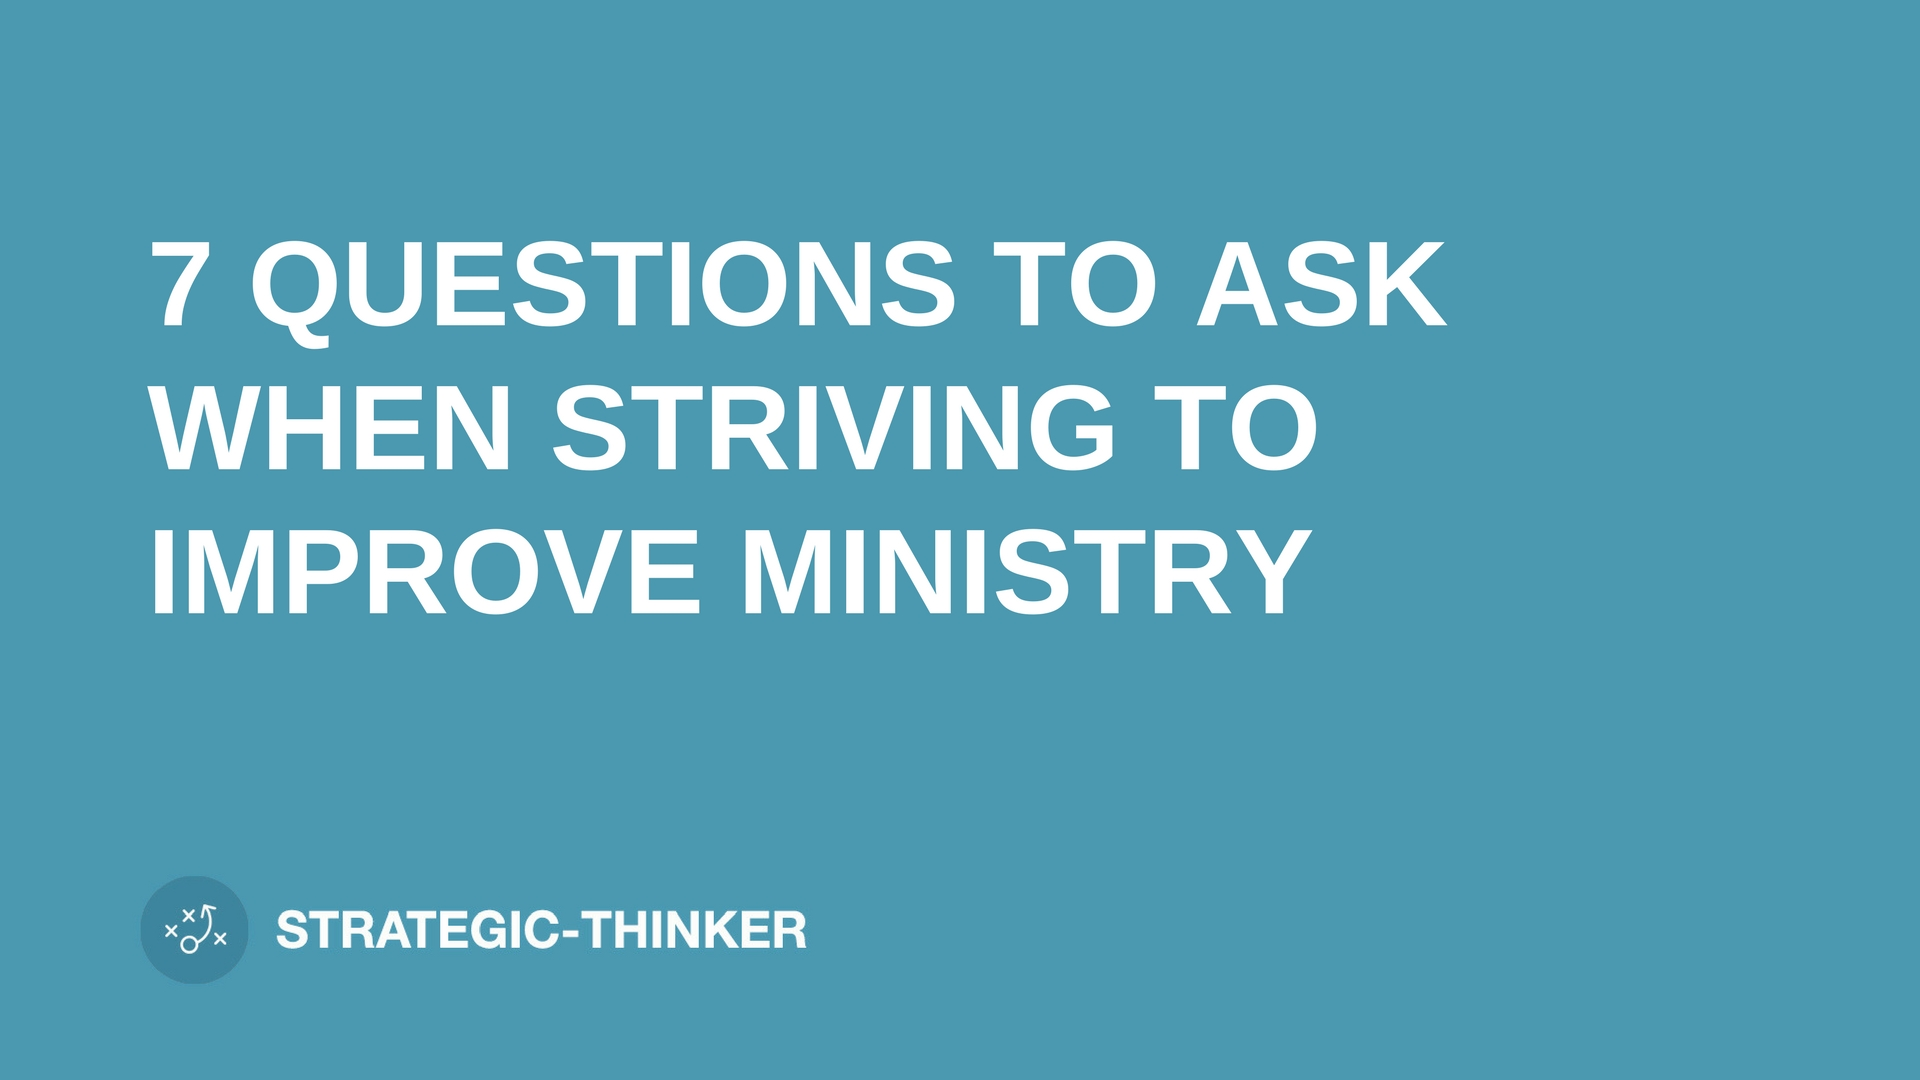 """text """"7 QUESTIONS TO ASK WHEN STRIVING TO IMPROVE MINISTRY"""" on blue background leaders.church"""